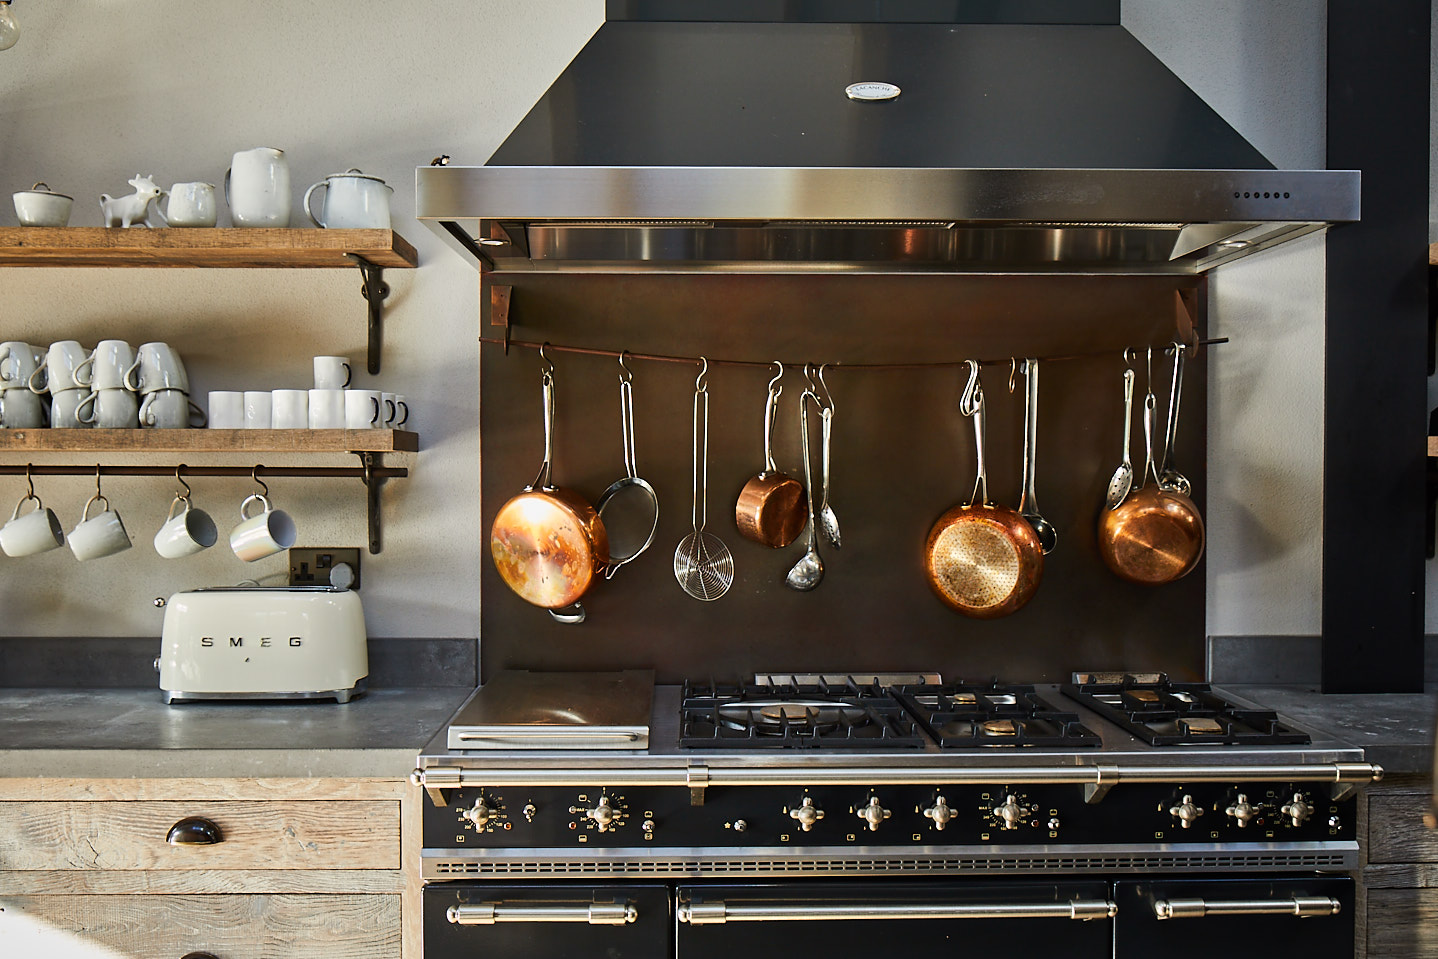 Copper pans hanging above range cooker with large industrial stainless steel extraction